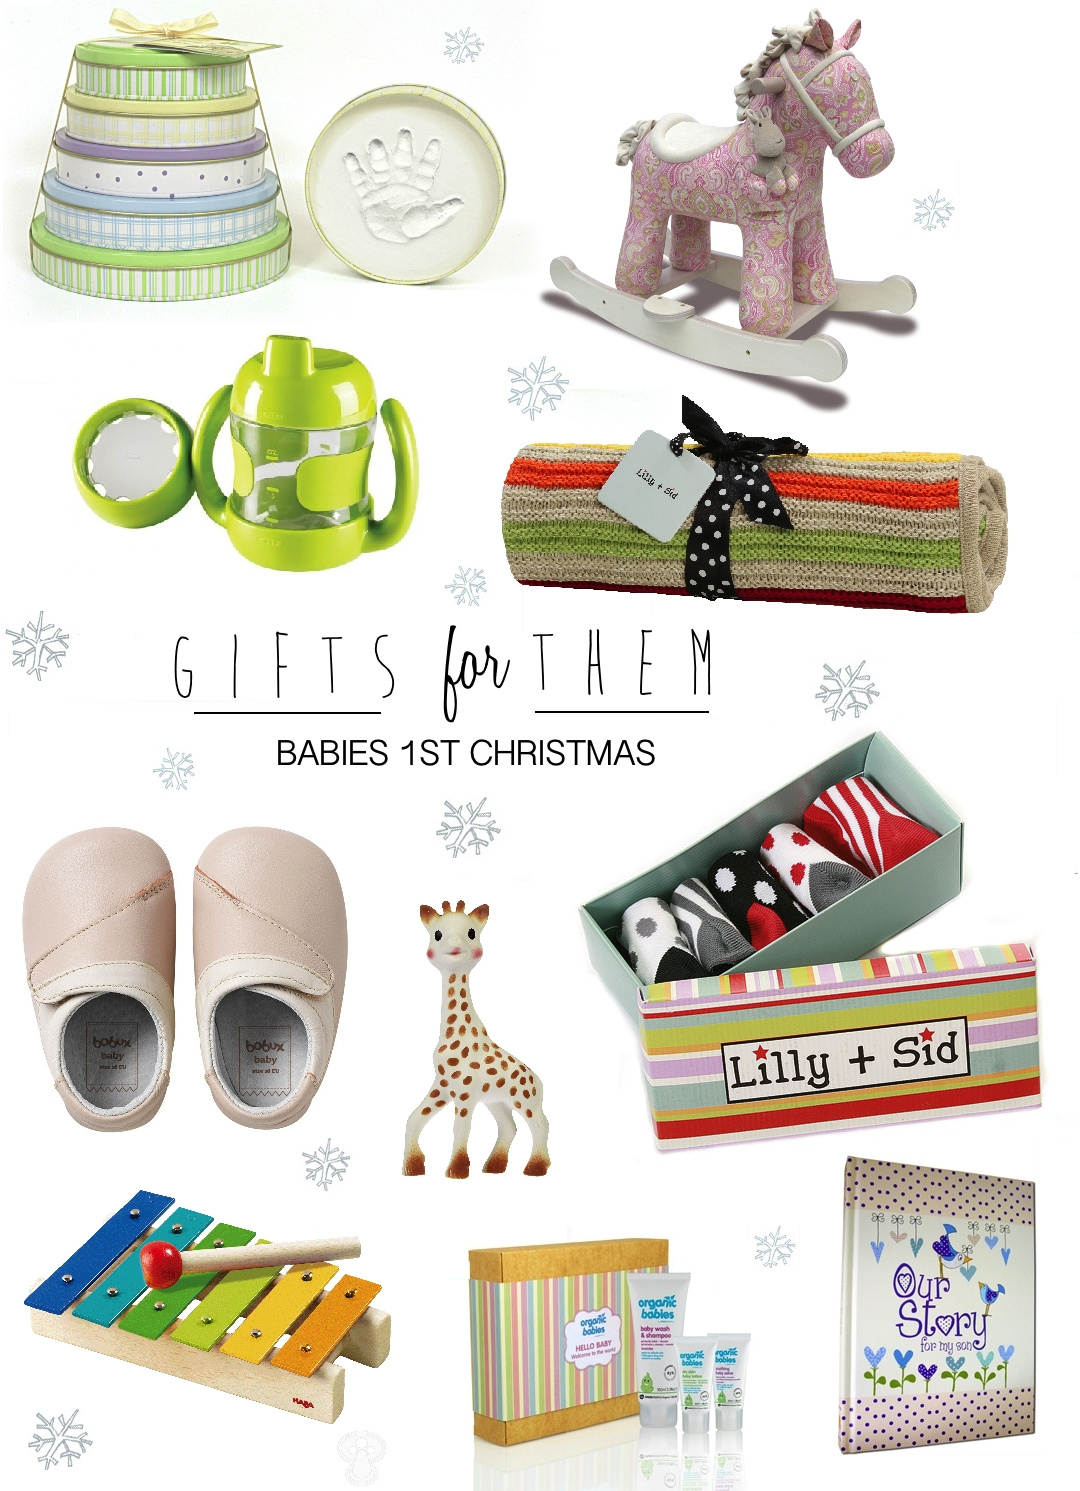 10 Ideal Baby First Christmas Gift Ideas christmas gift guide 2013 babys 1st christmas oh so amelia 2020